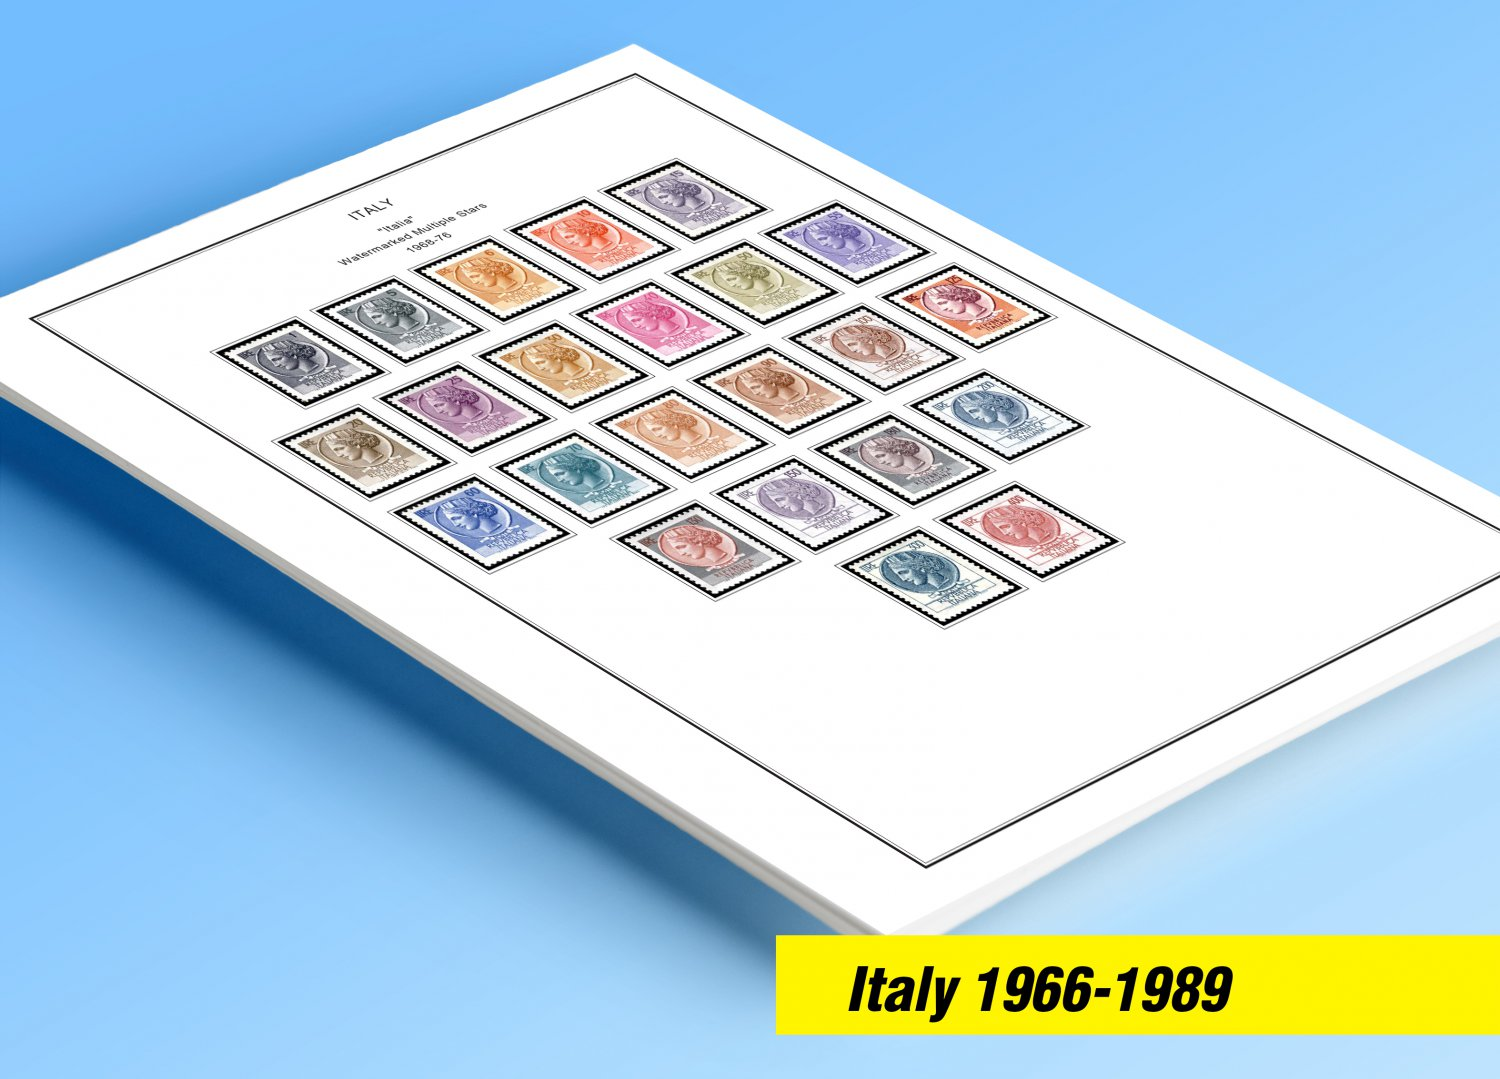 COLOR PRINTED ITALY 1966-1989 STAMP ALBUM PAGES (79 illustrated pages)